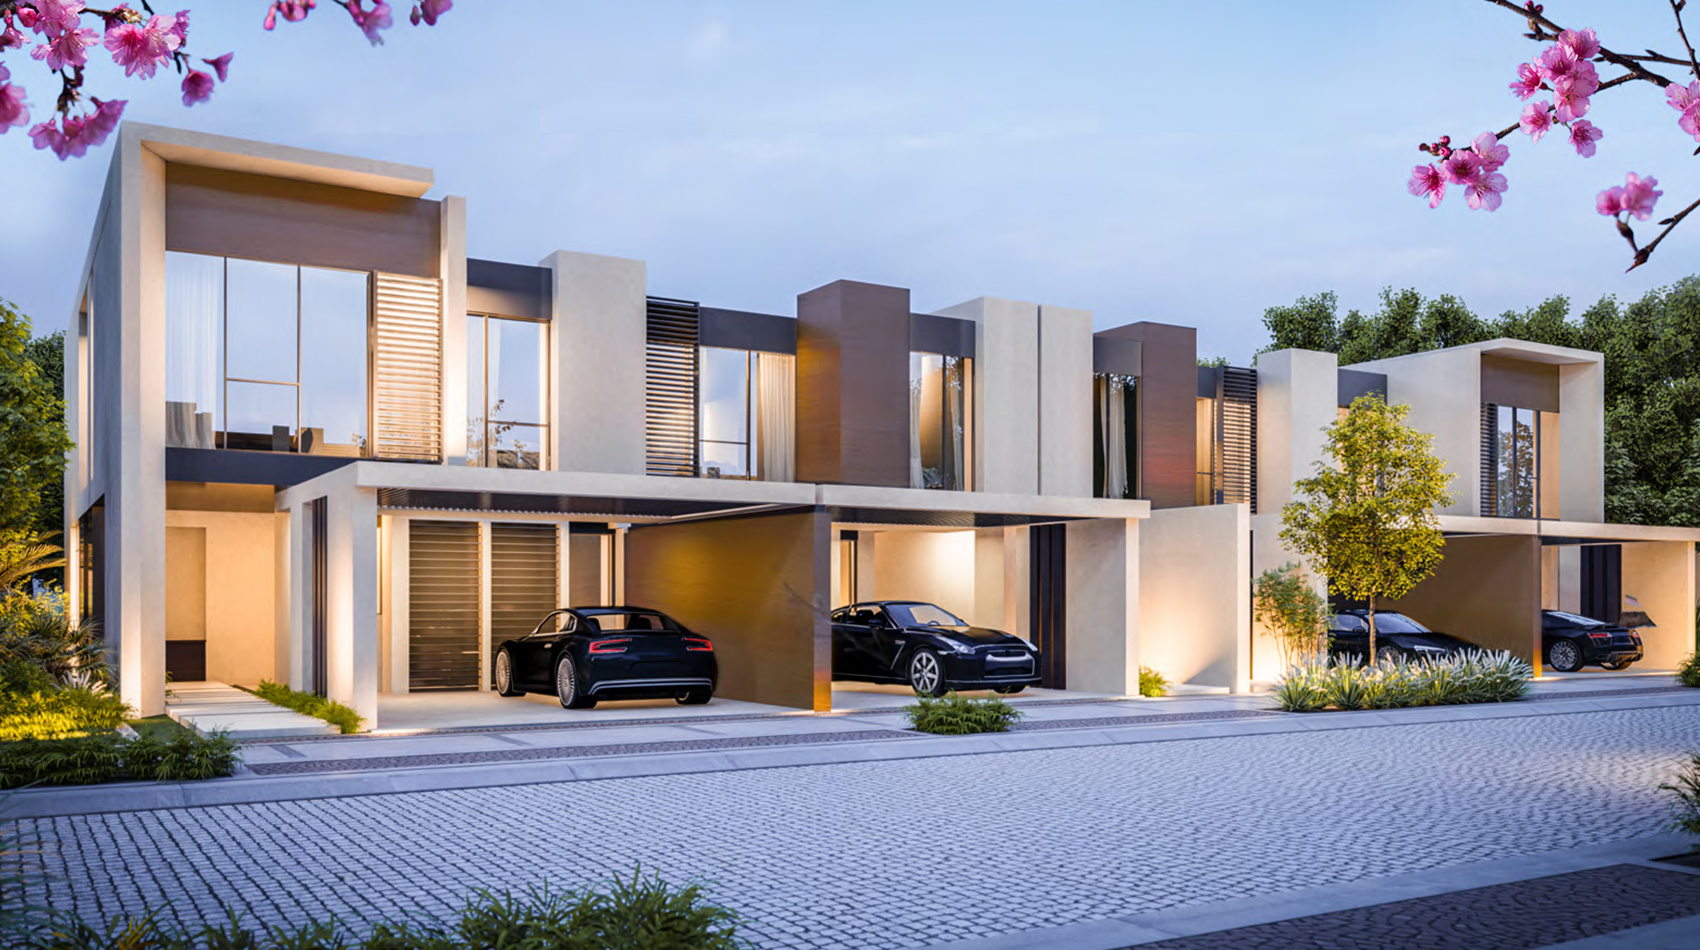 Cherrywoods Townhouses By Meraas At Al Qudra Road, Dubai